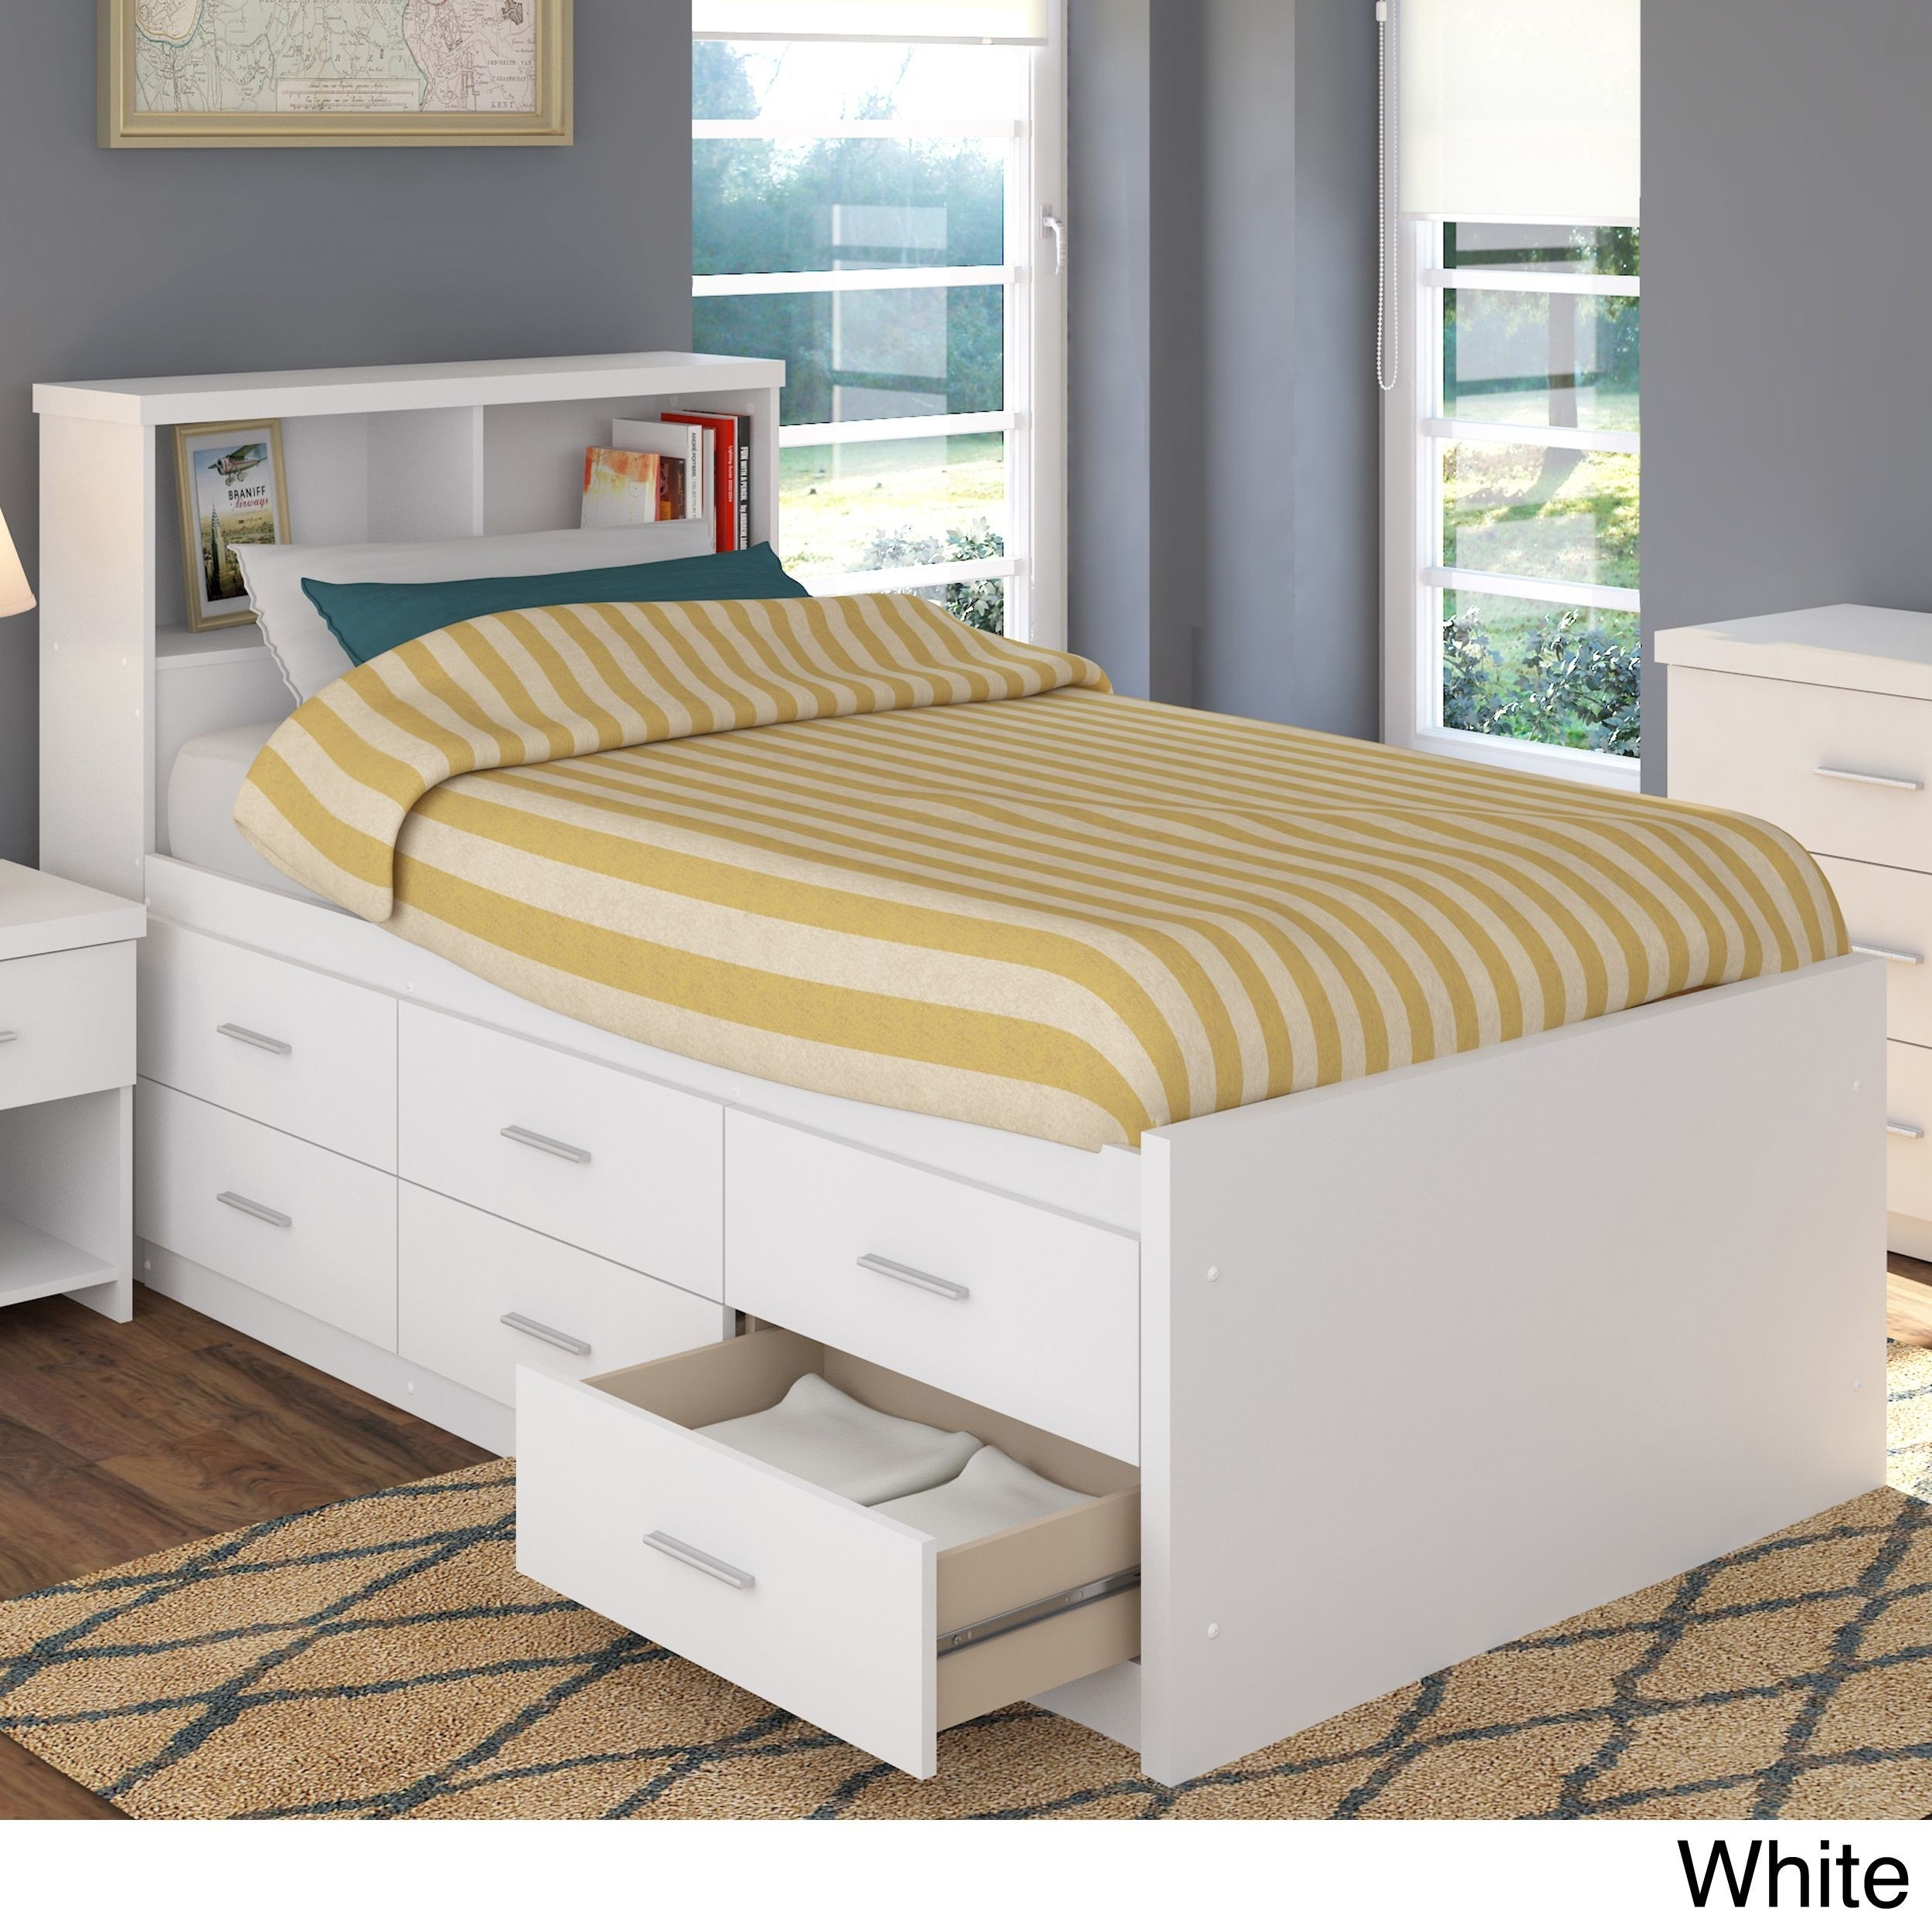 Twin Storage Bed With Bookcase Headboard For 2020 Ideas On Foter